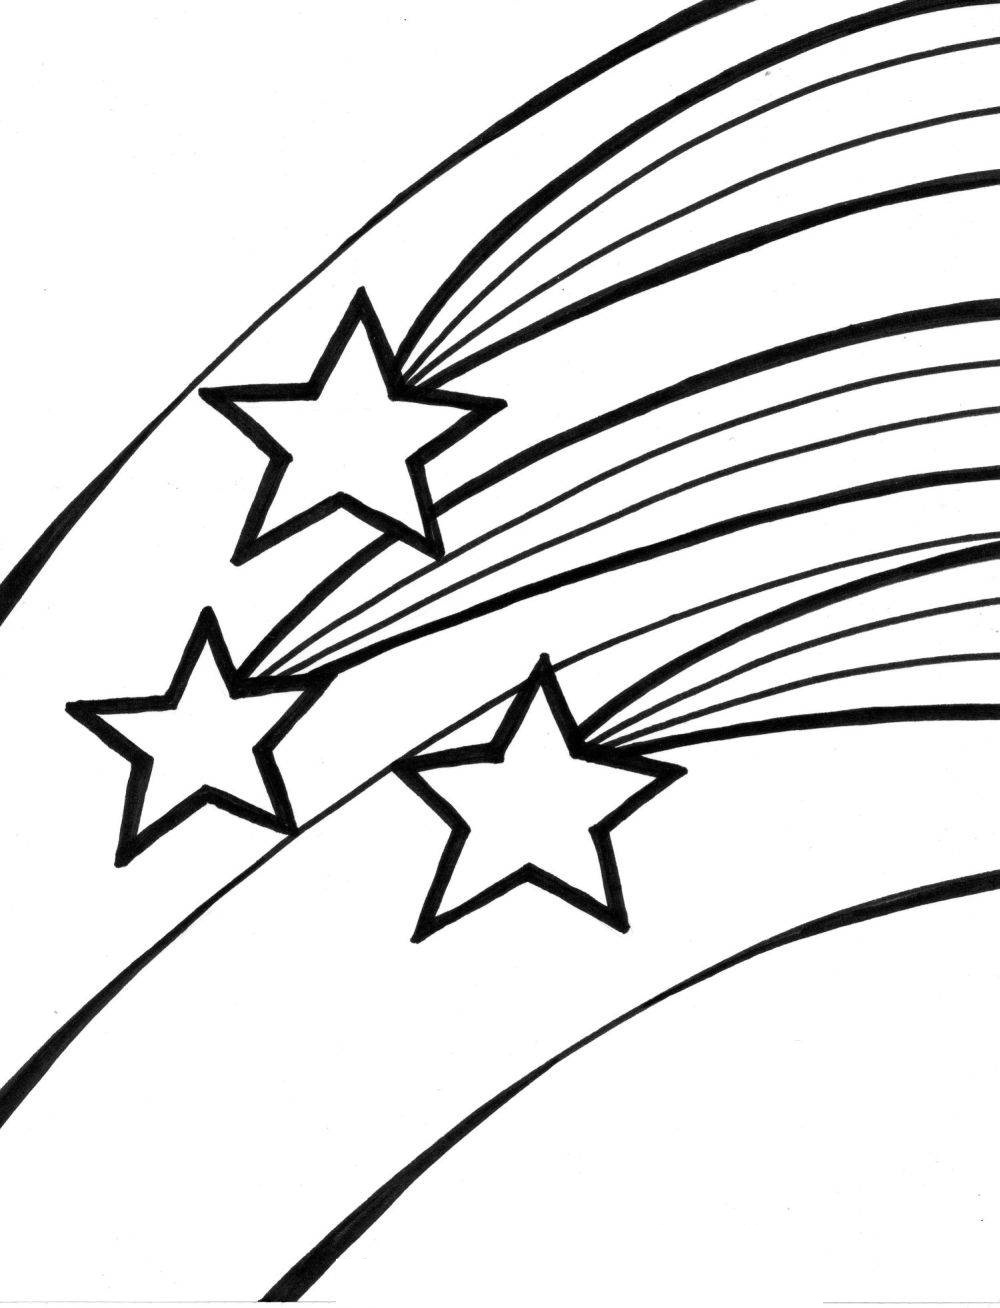 stars coloring pages star shape coloring page getcoloringpagescom pages coloring stars